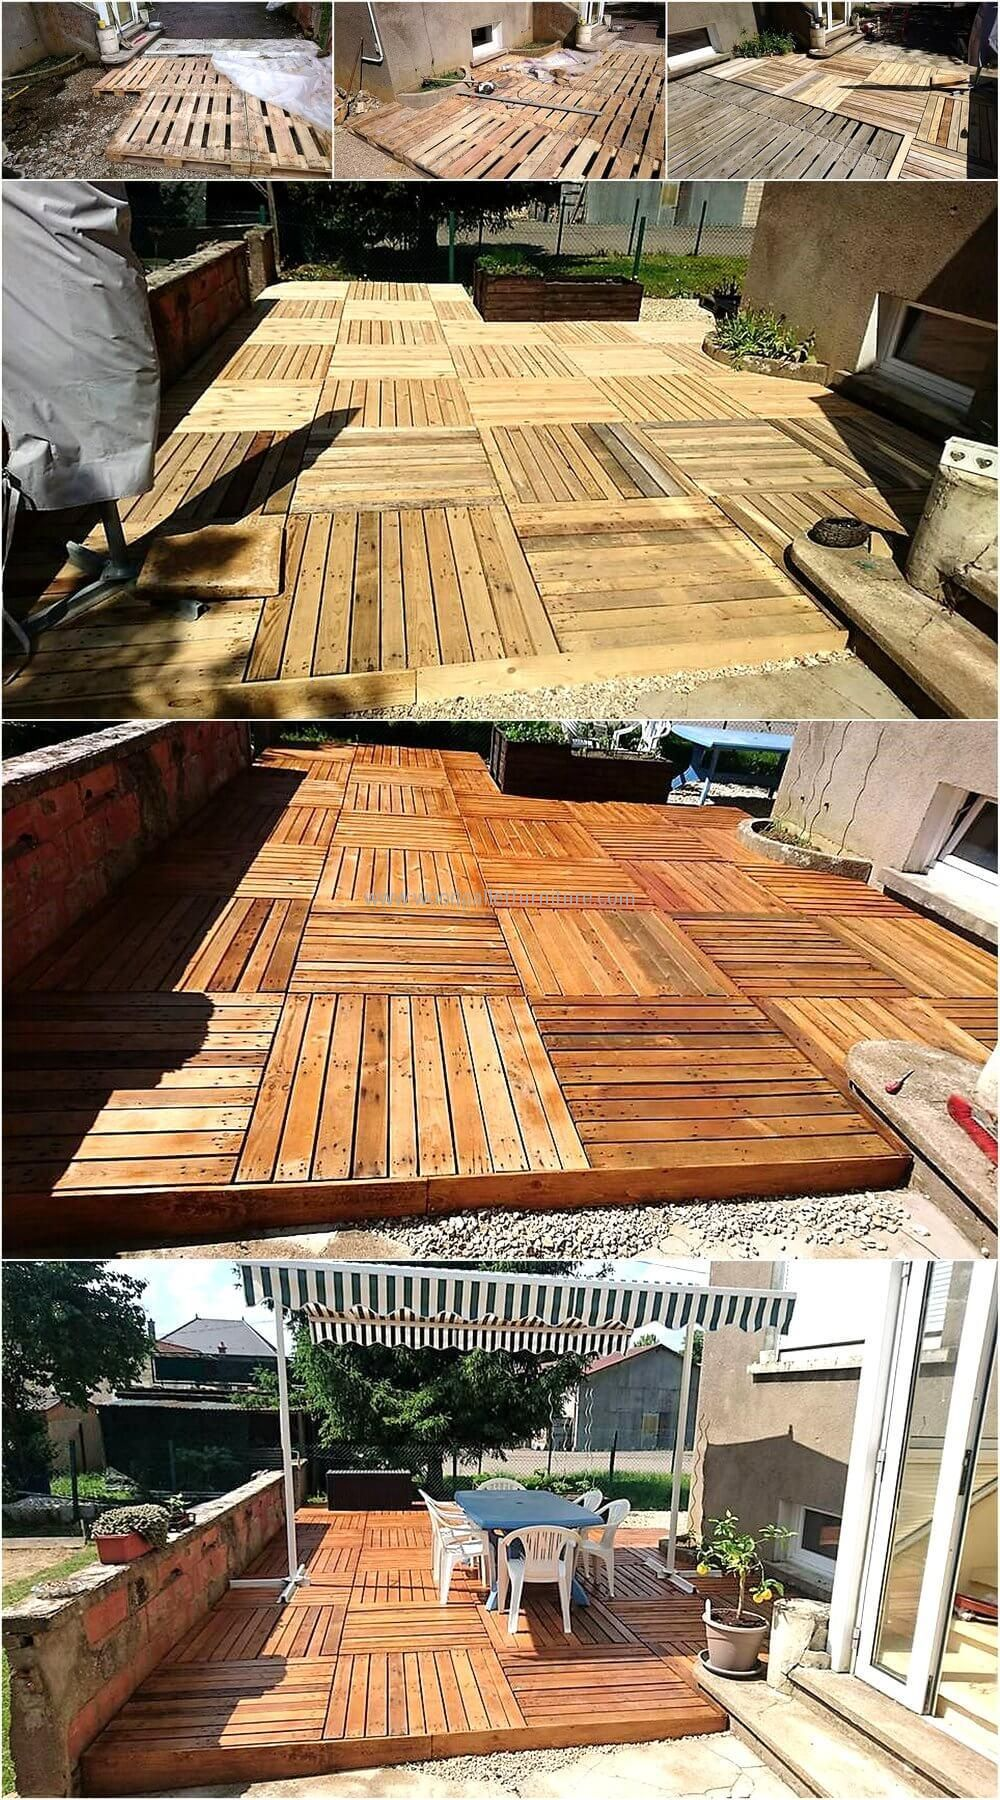 It Is A Good Idea To Use The Used Material Like Wood Pallets When There Need Of Making Area In Garden Or Any Other Place Outside Home